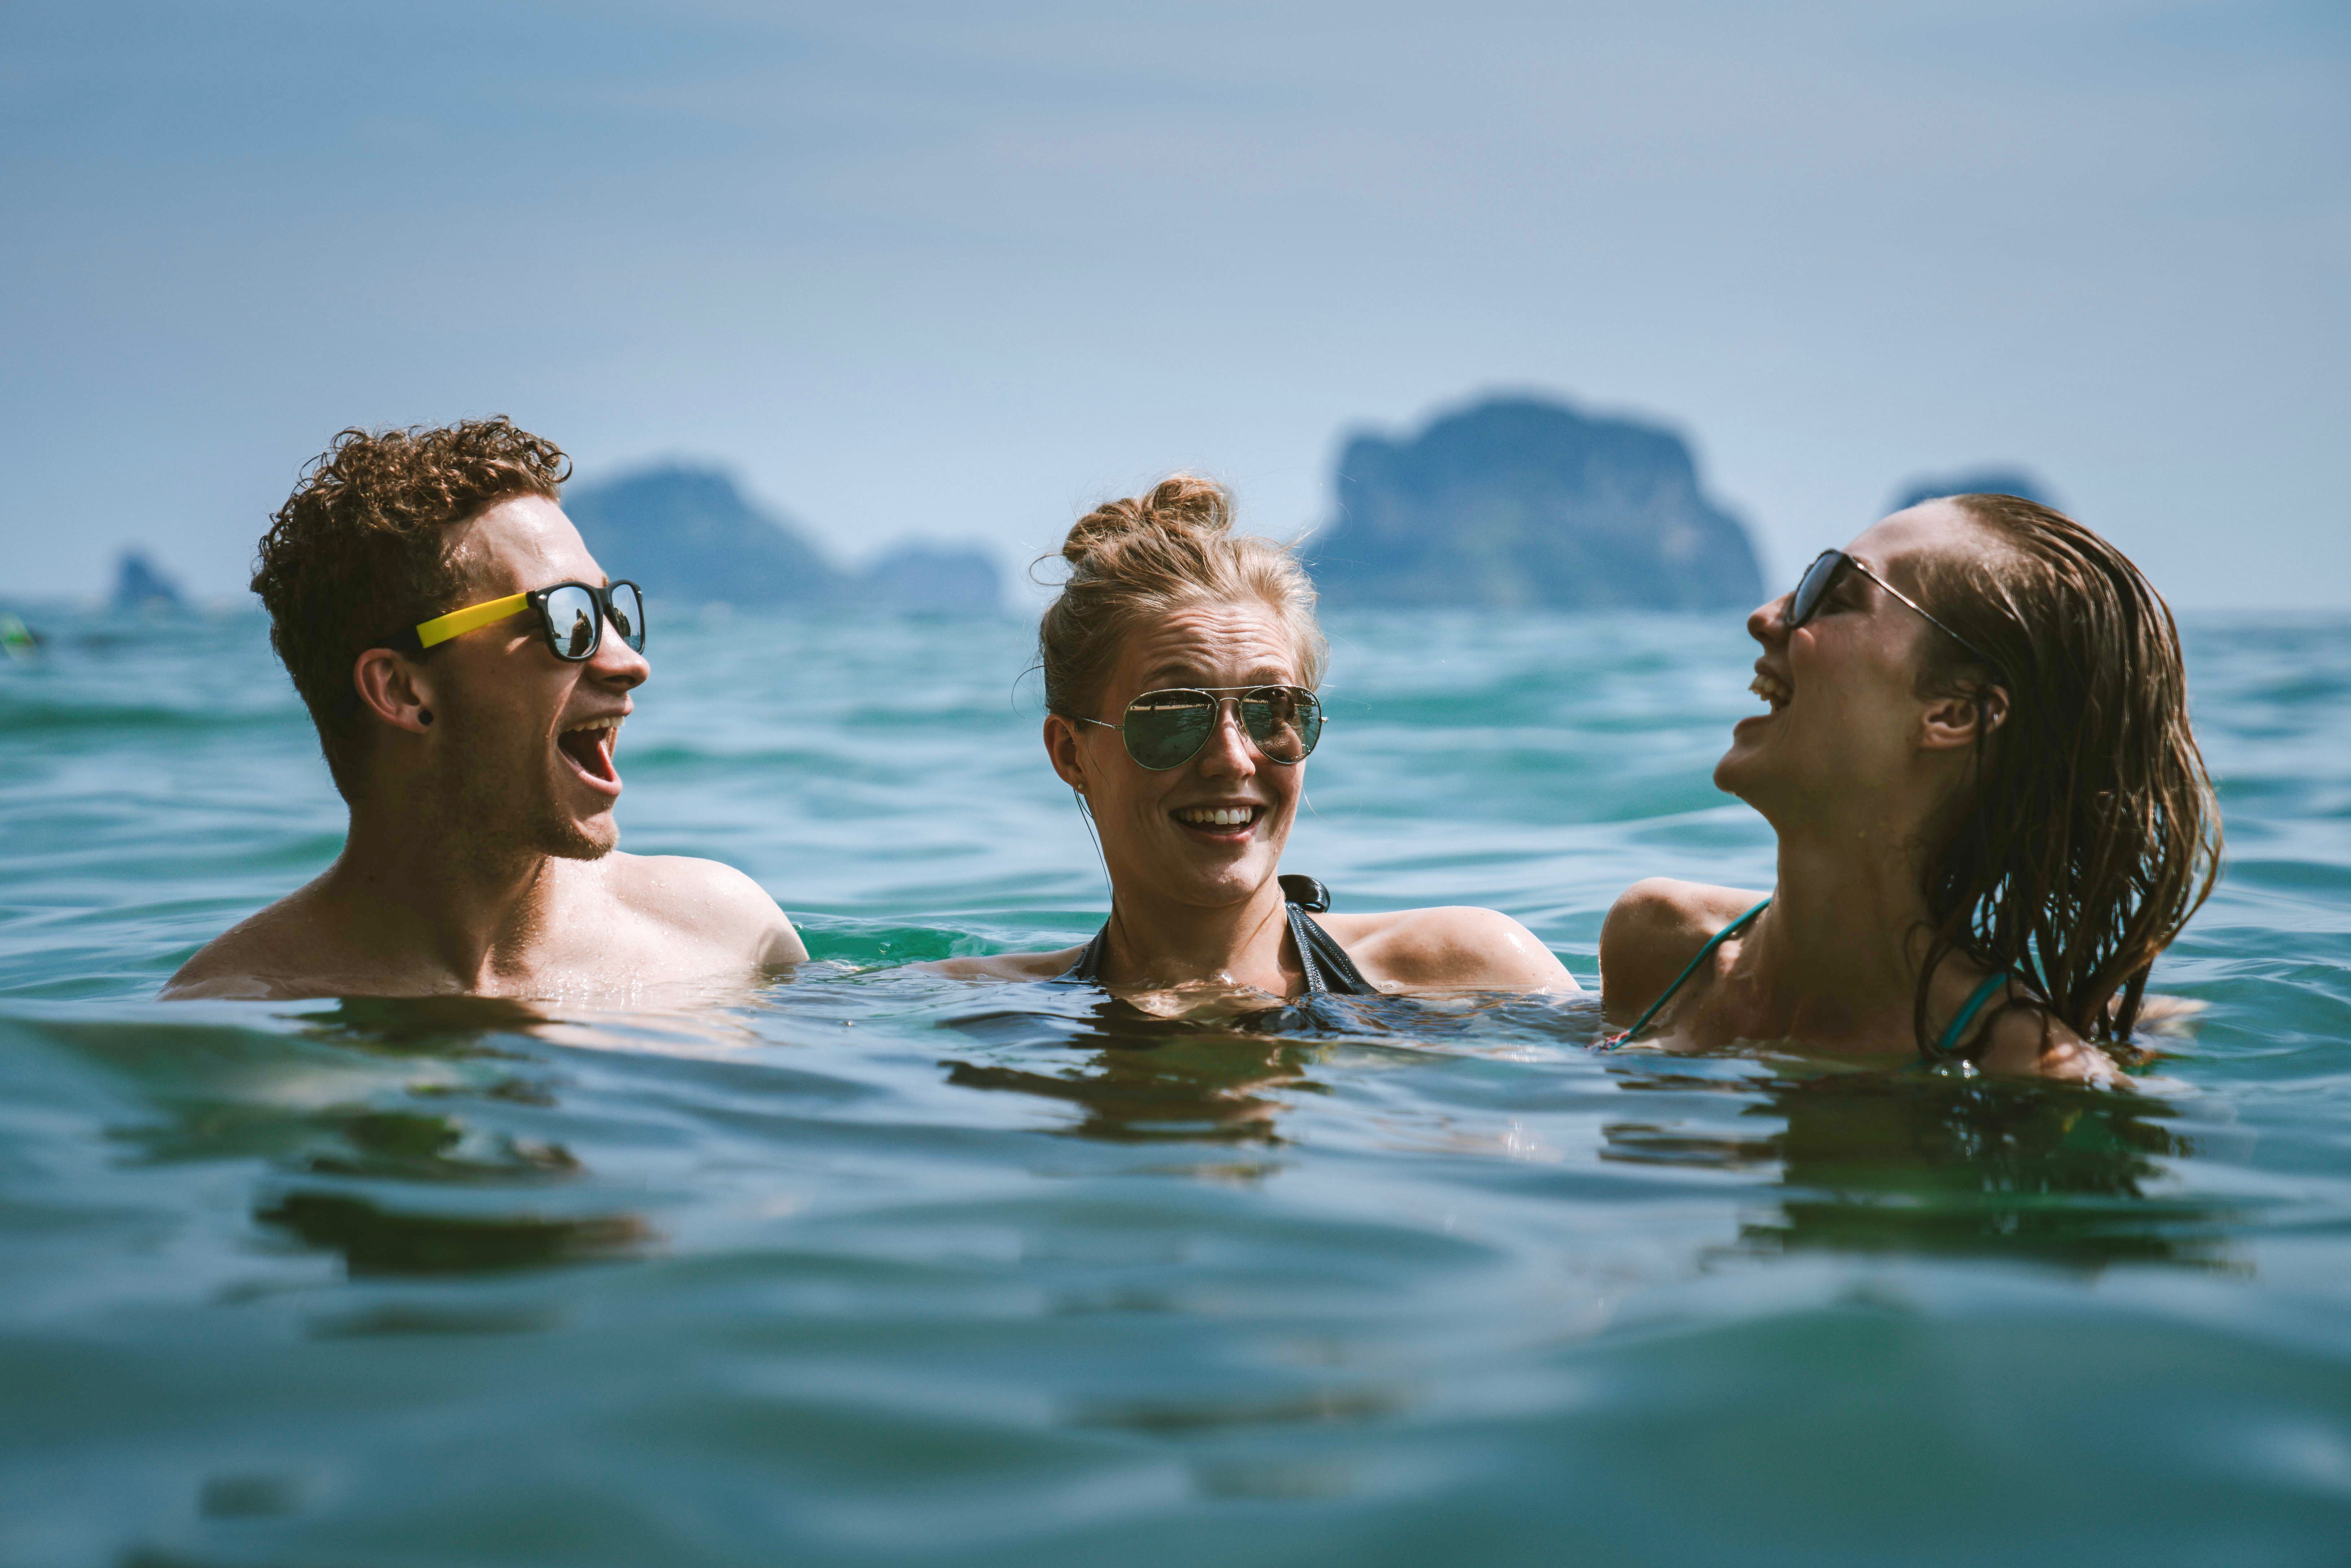 Managing Employee Paid Time Off Doesn't Have To Be Difficult